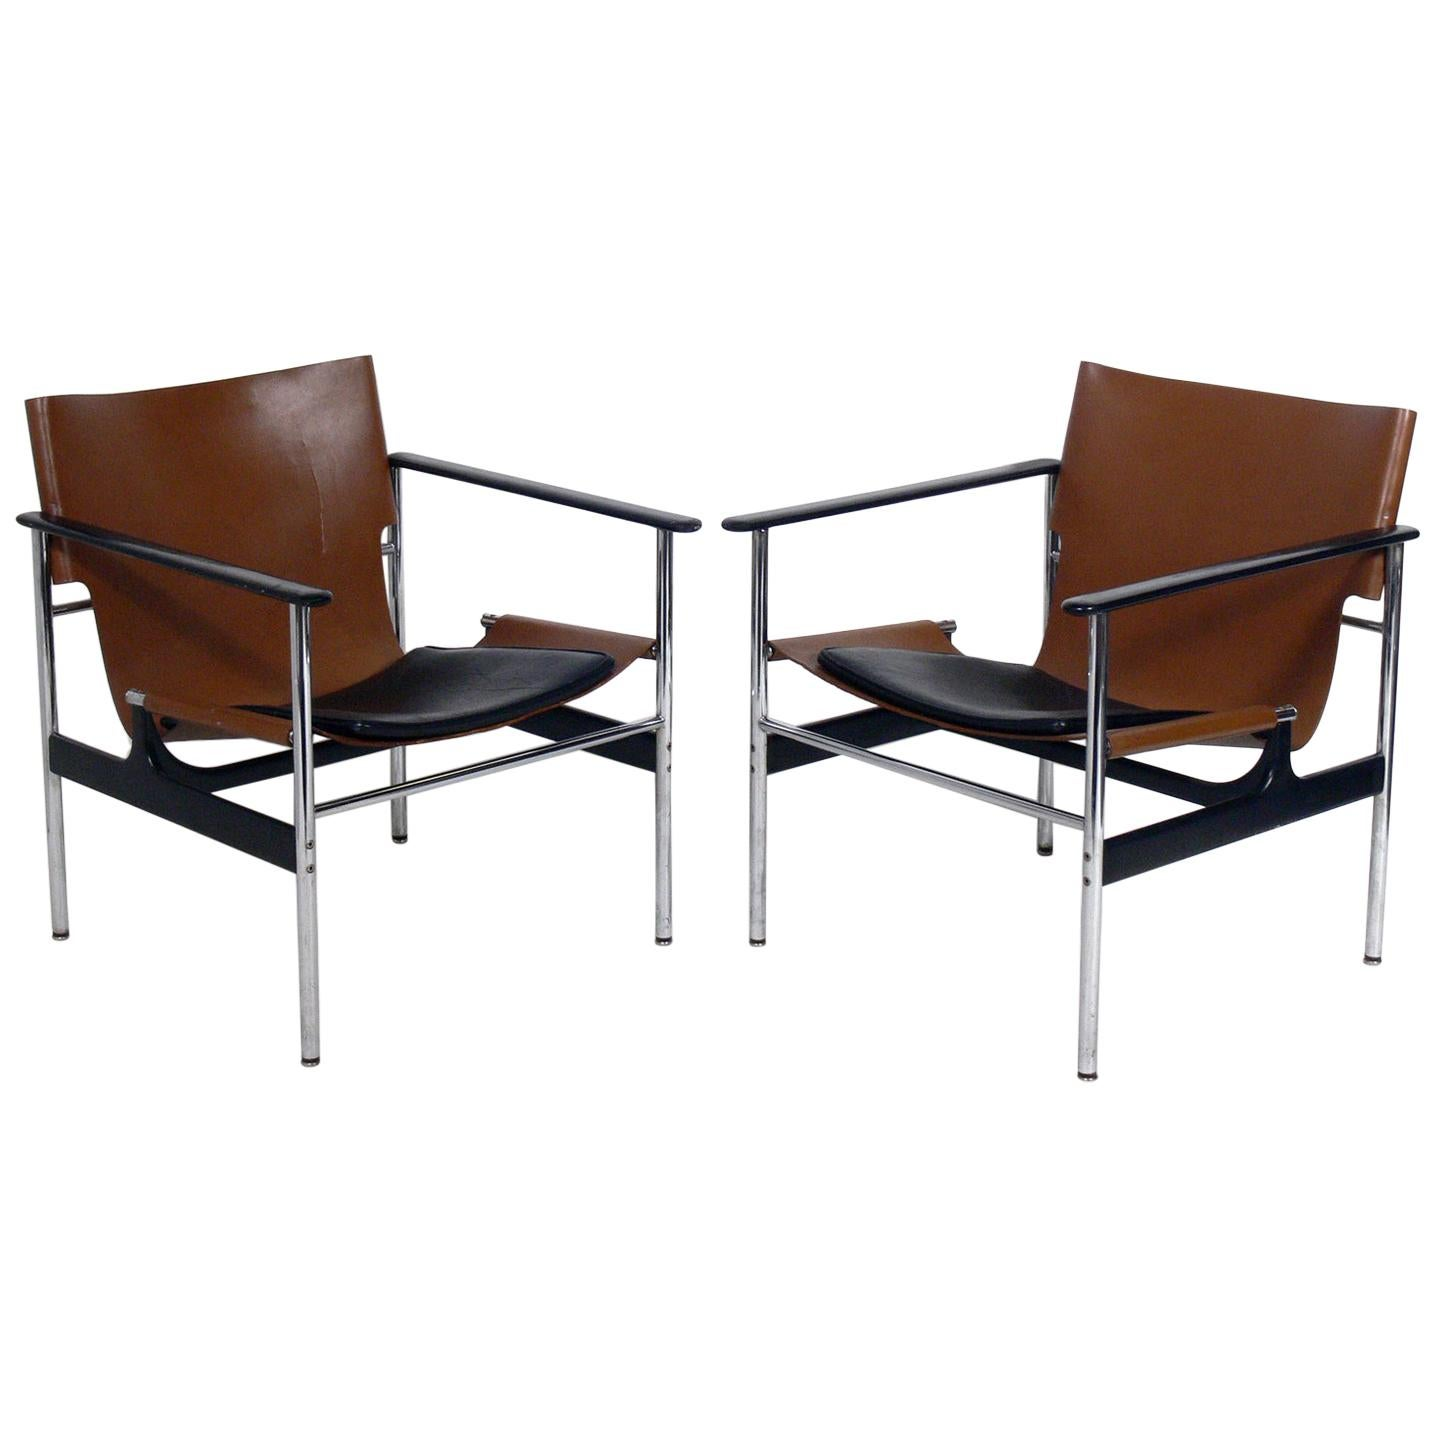 Pair of Leather Sling Lounge Chairs by Charles Pollock for Knoll